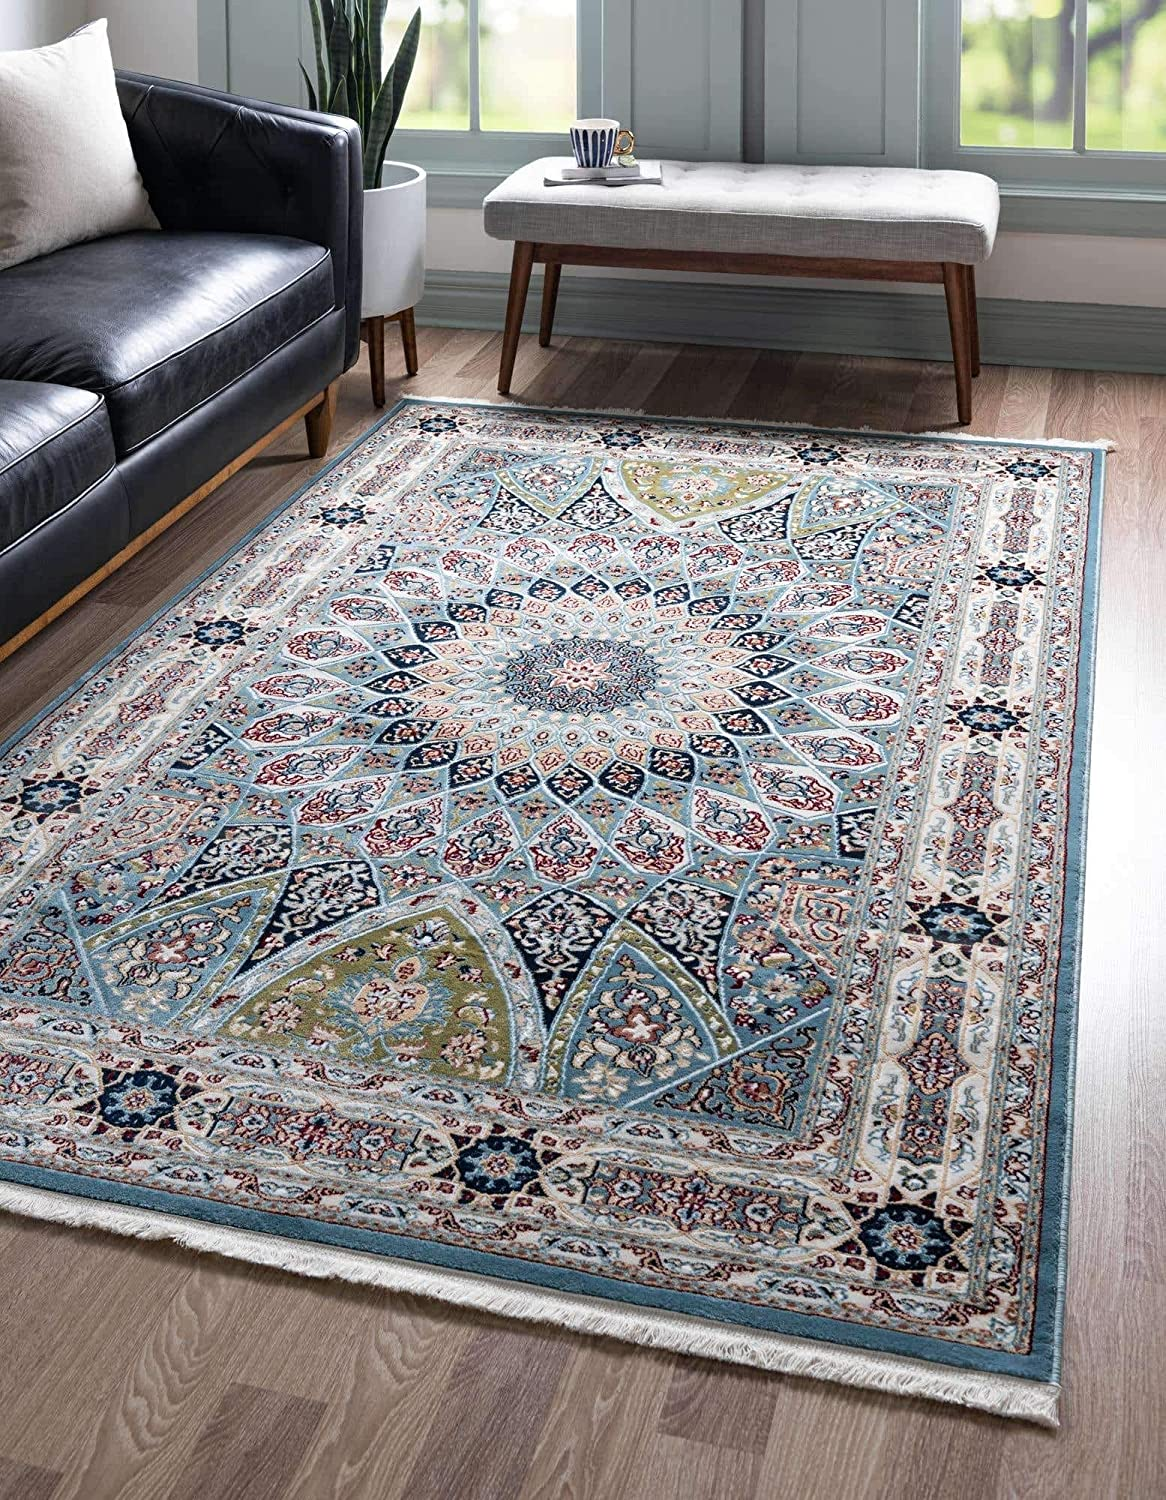 Unique Loom Narenj Collection Classic Traditional Medallion Textured Blue Area Rug (8' 0 x 10' 0)